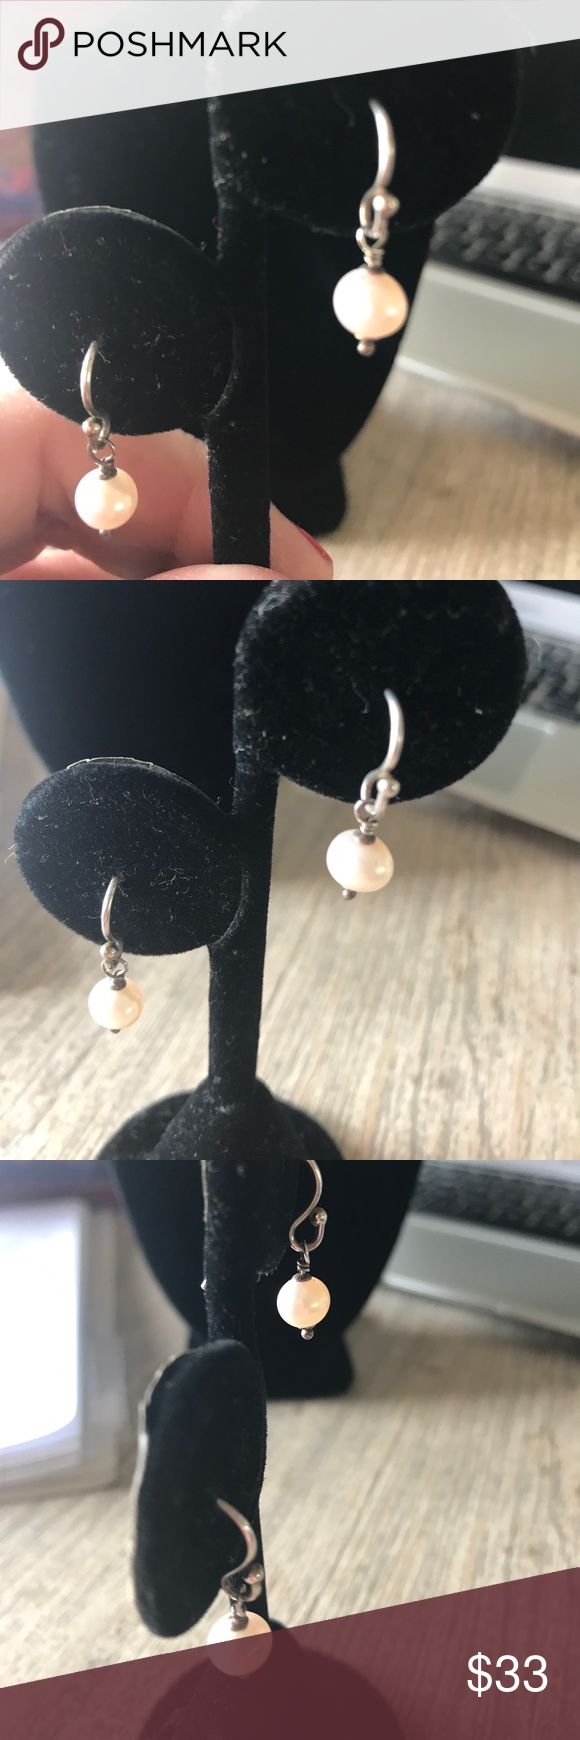 Silpada pearl earrings .925 Sapana, dainty pearl earrings great condition worn once comes from smoke free home Silpada Jewelry Earrings